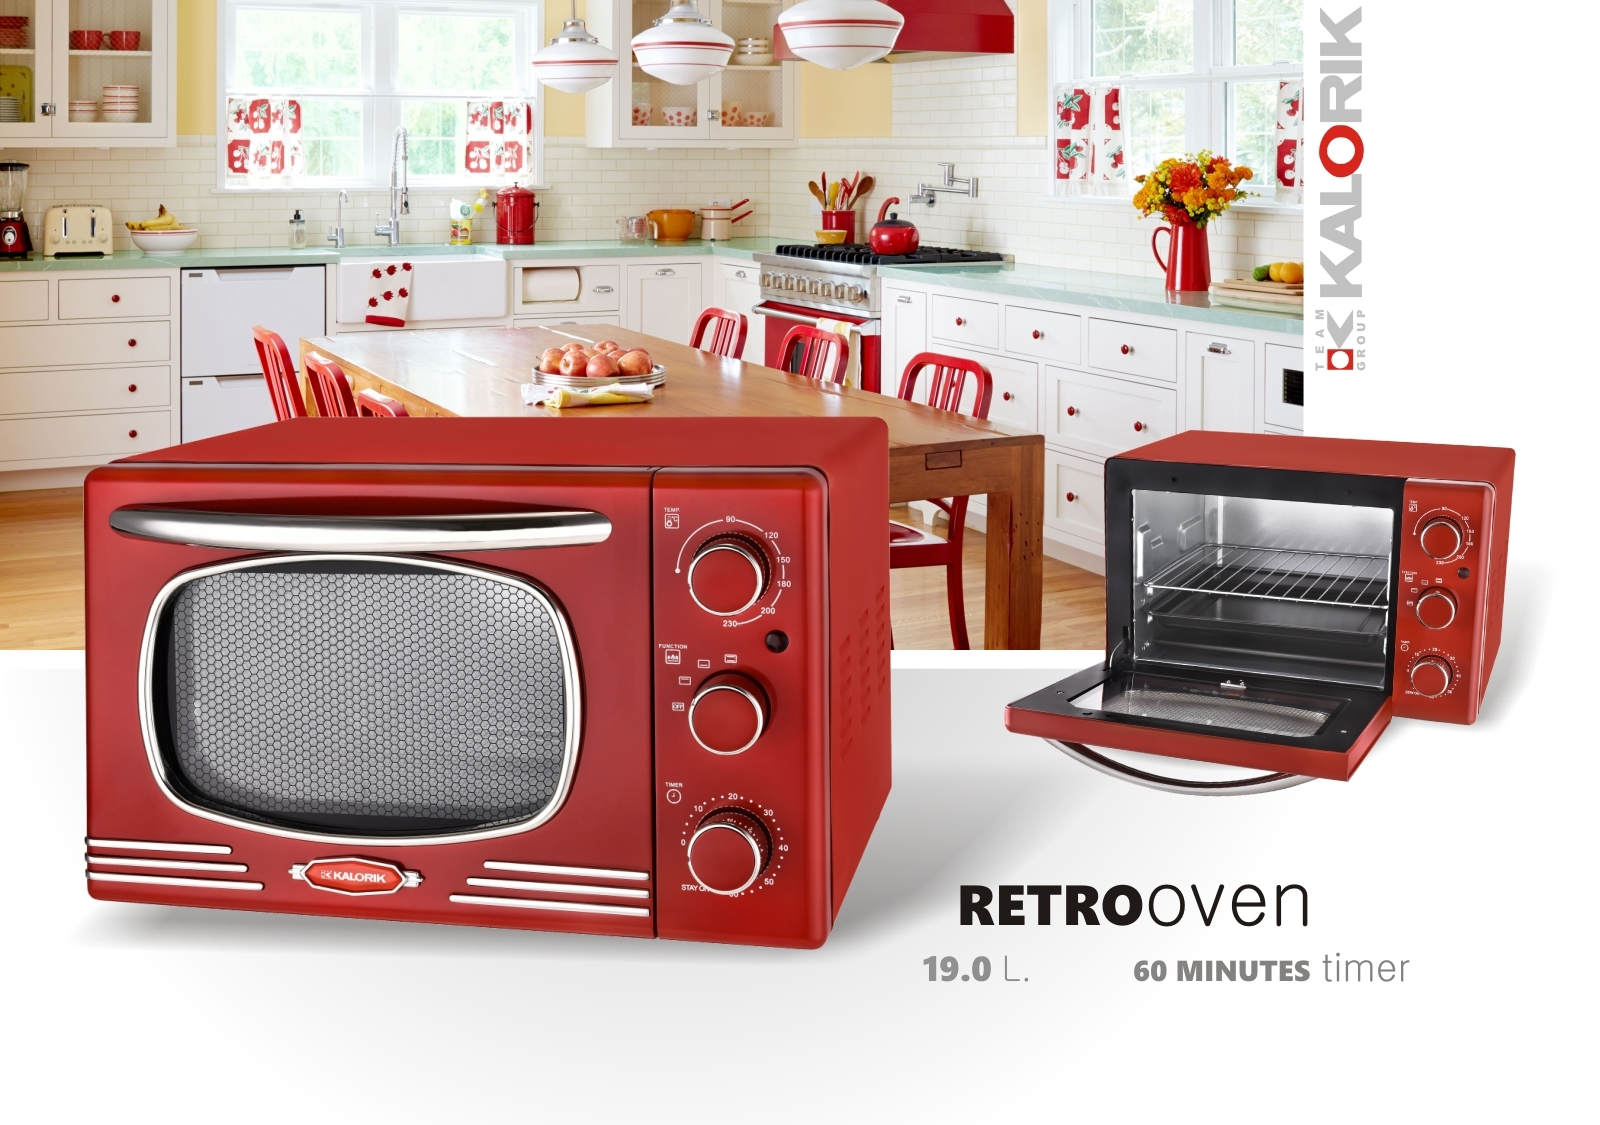 Multiofen im Retro-Design